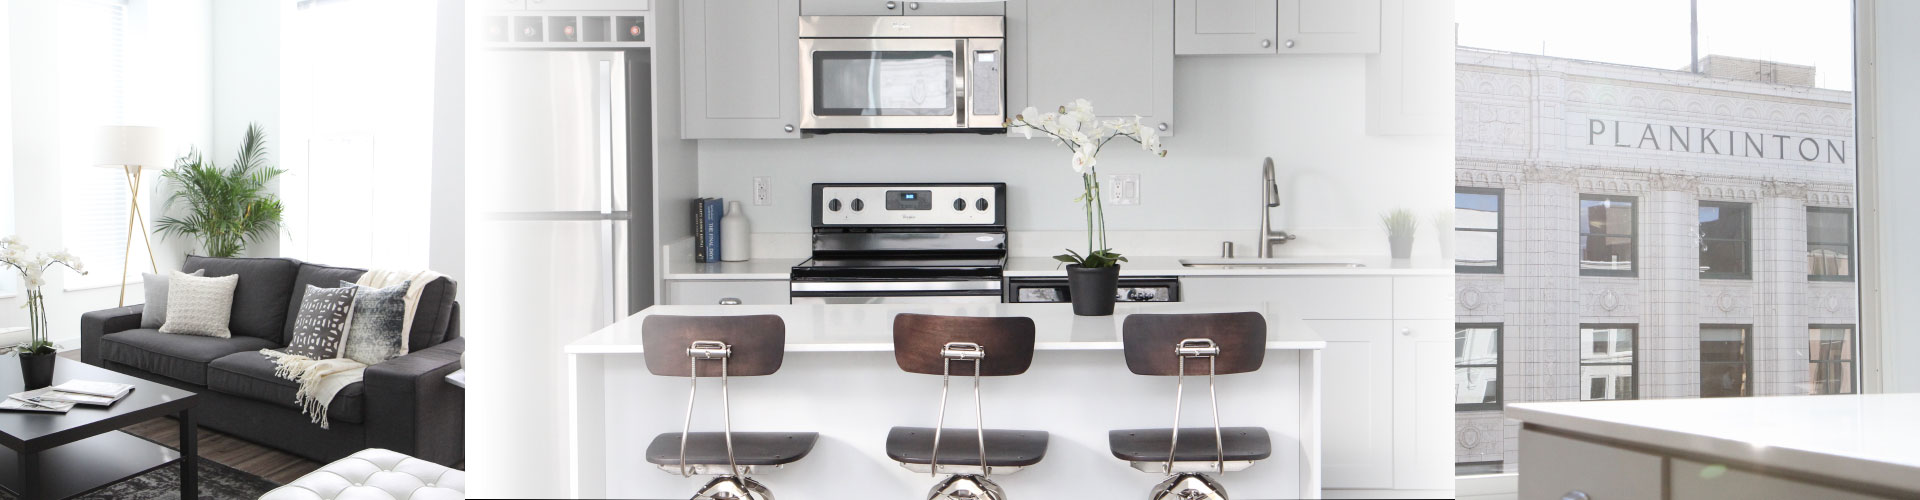 Header of Couch, Kitchen, and Building